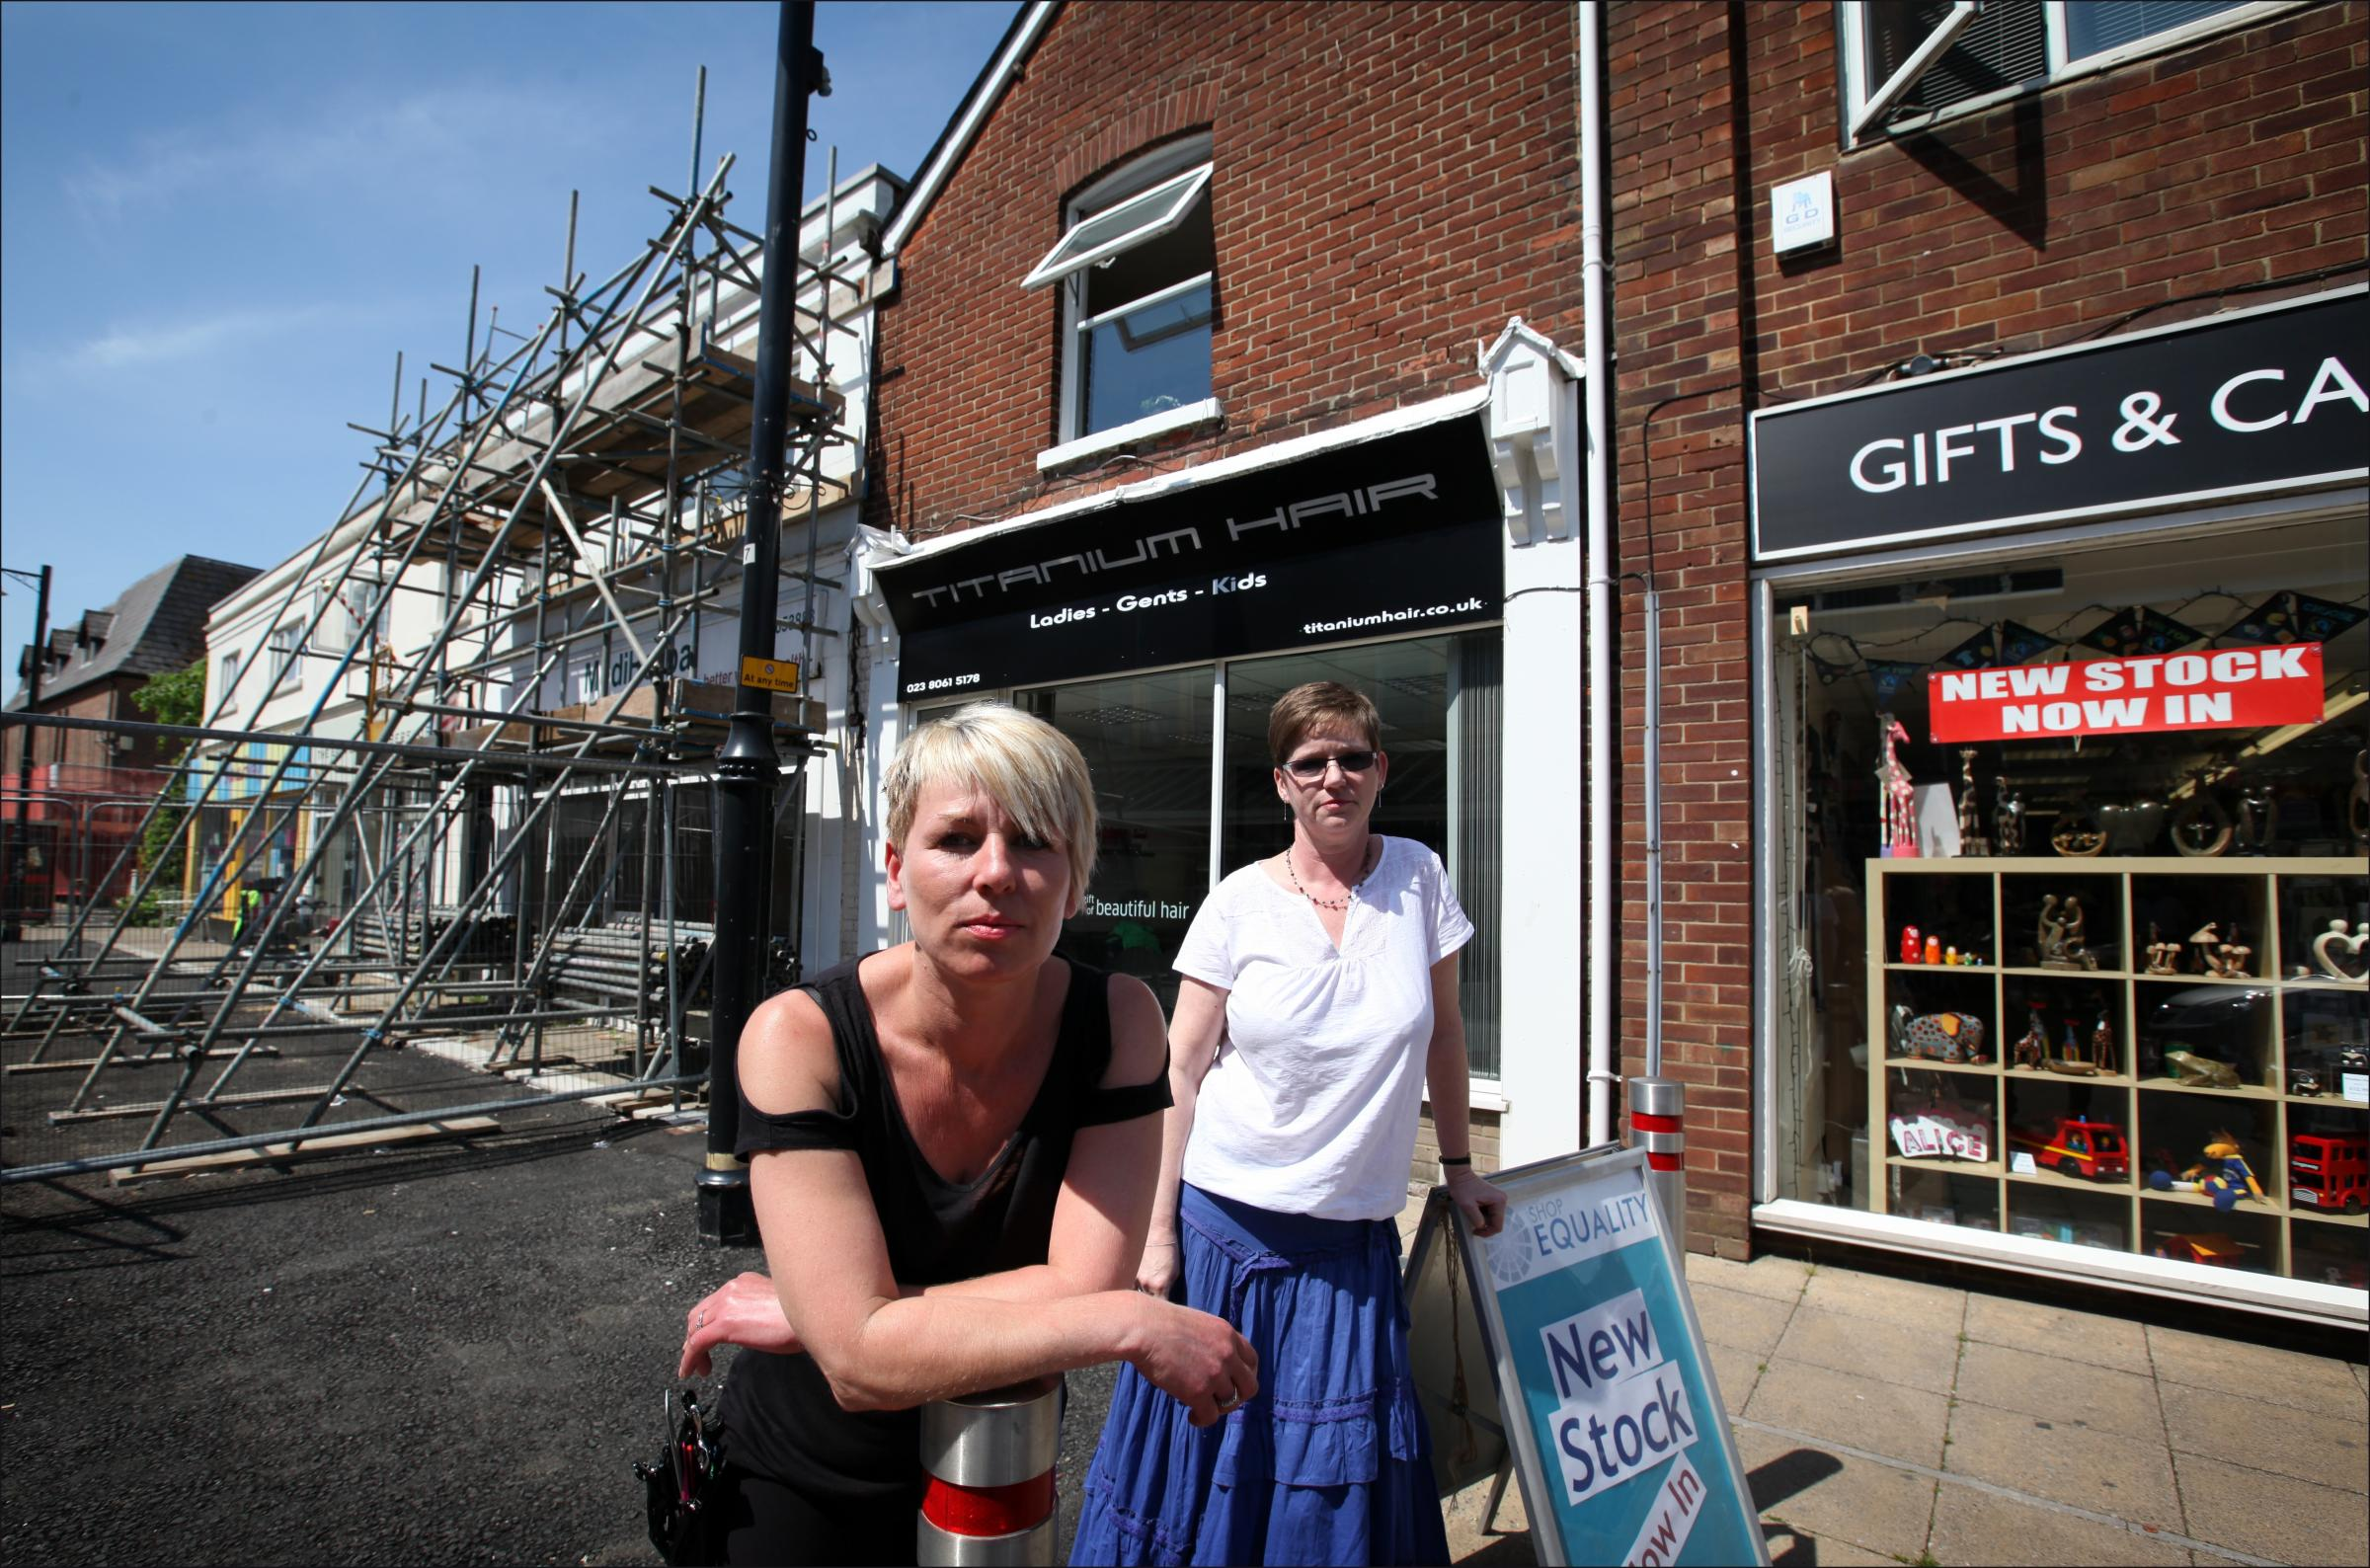 Donna Smith, owner of Titanium hair salon and Sue Hunt, who runs Fairtrade store Shop Equality